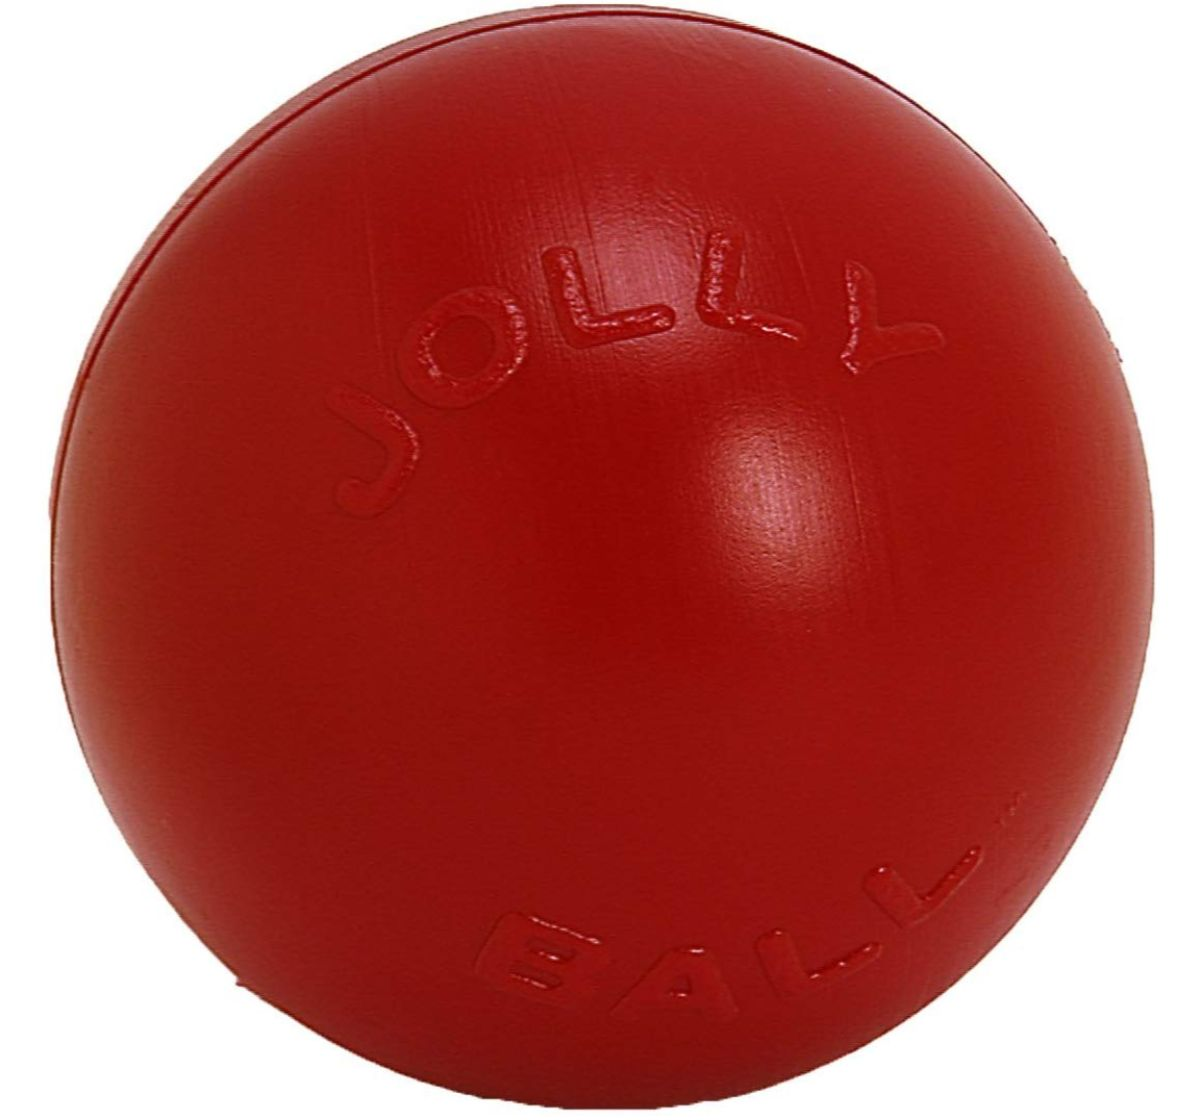 Jolly Pets Push-n-Play Ball Dog Toy Red - 25.4 cm